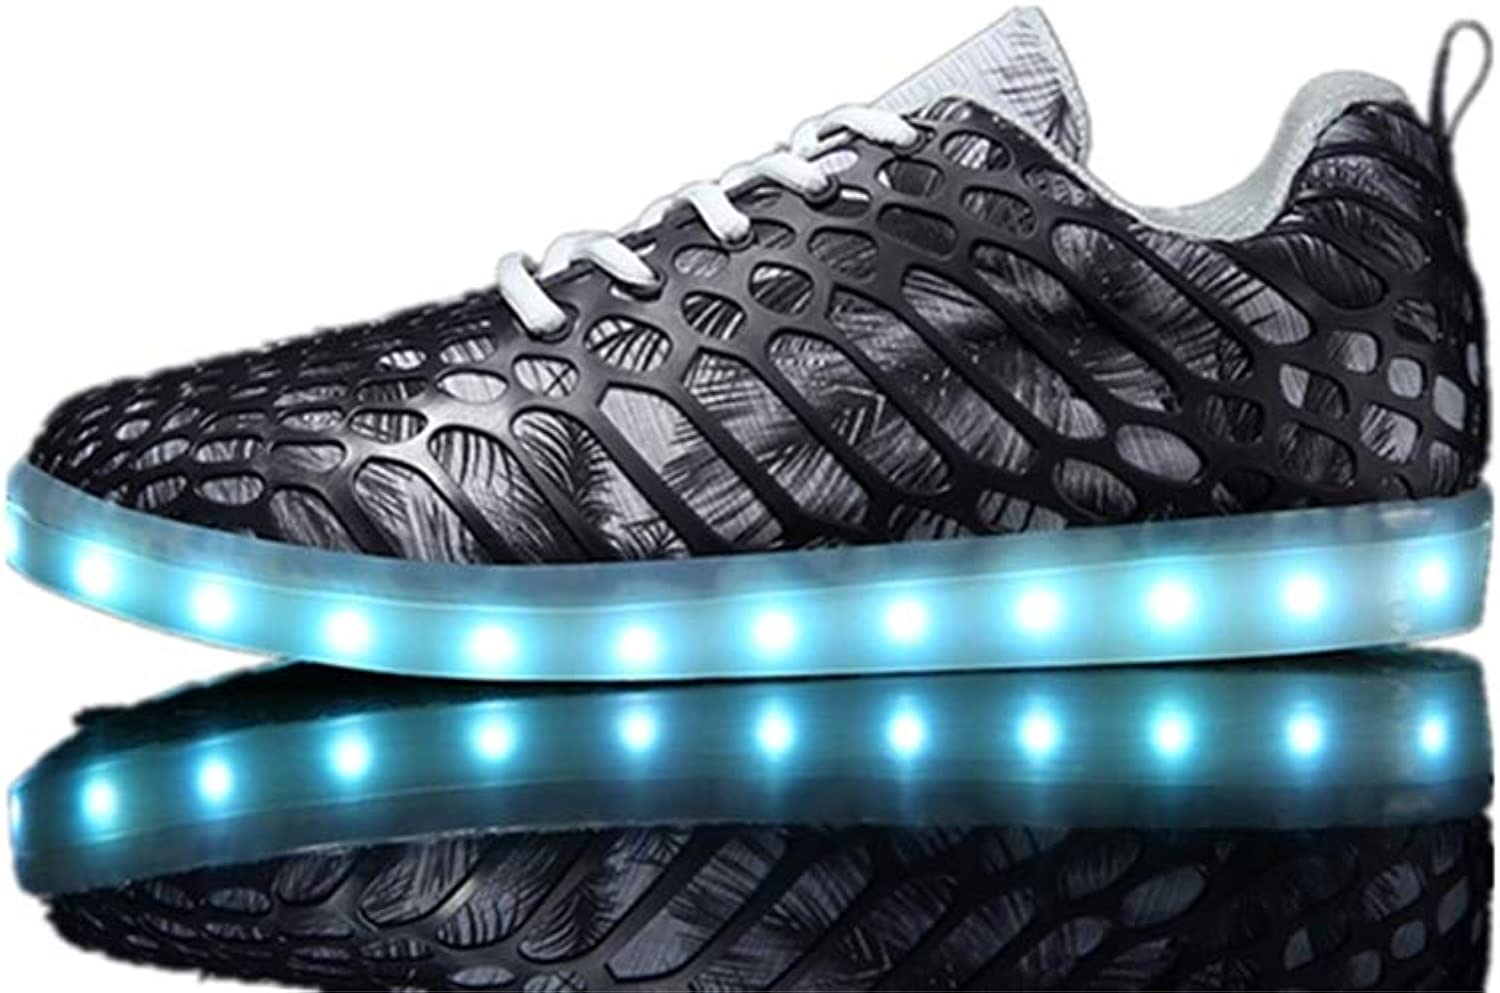 LUOBM Unisex LED Casual shoes USB Charging Fluorescent Bright Hollow Couple shoes